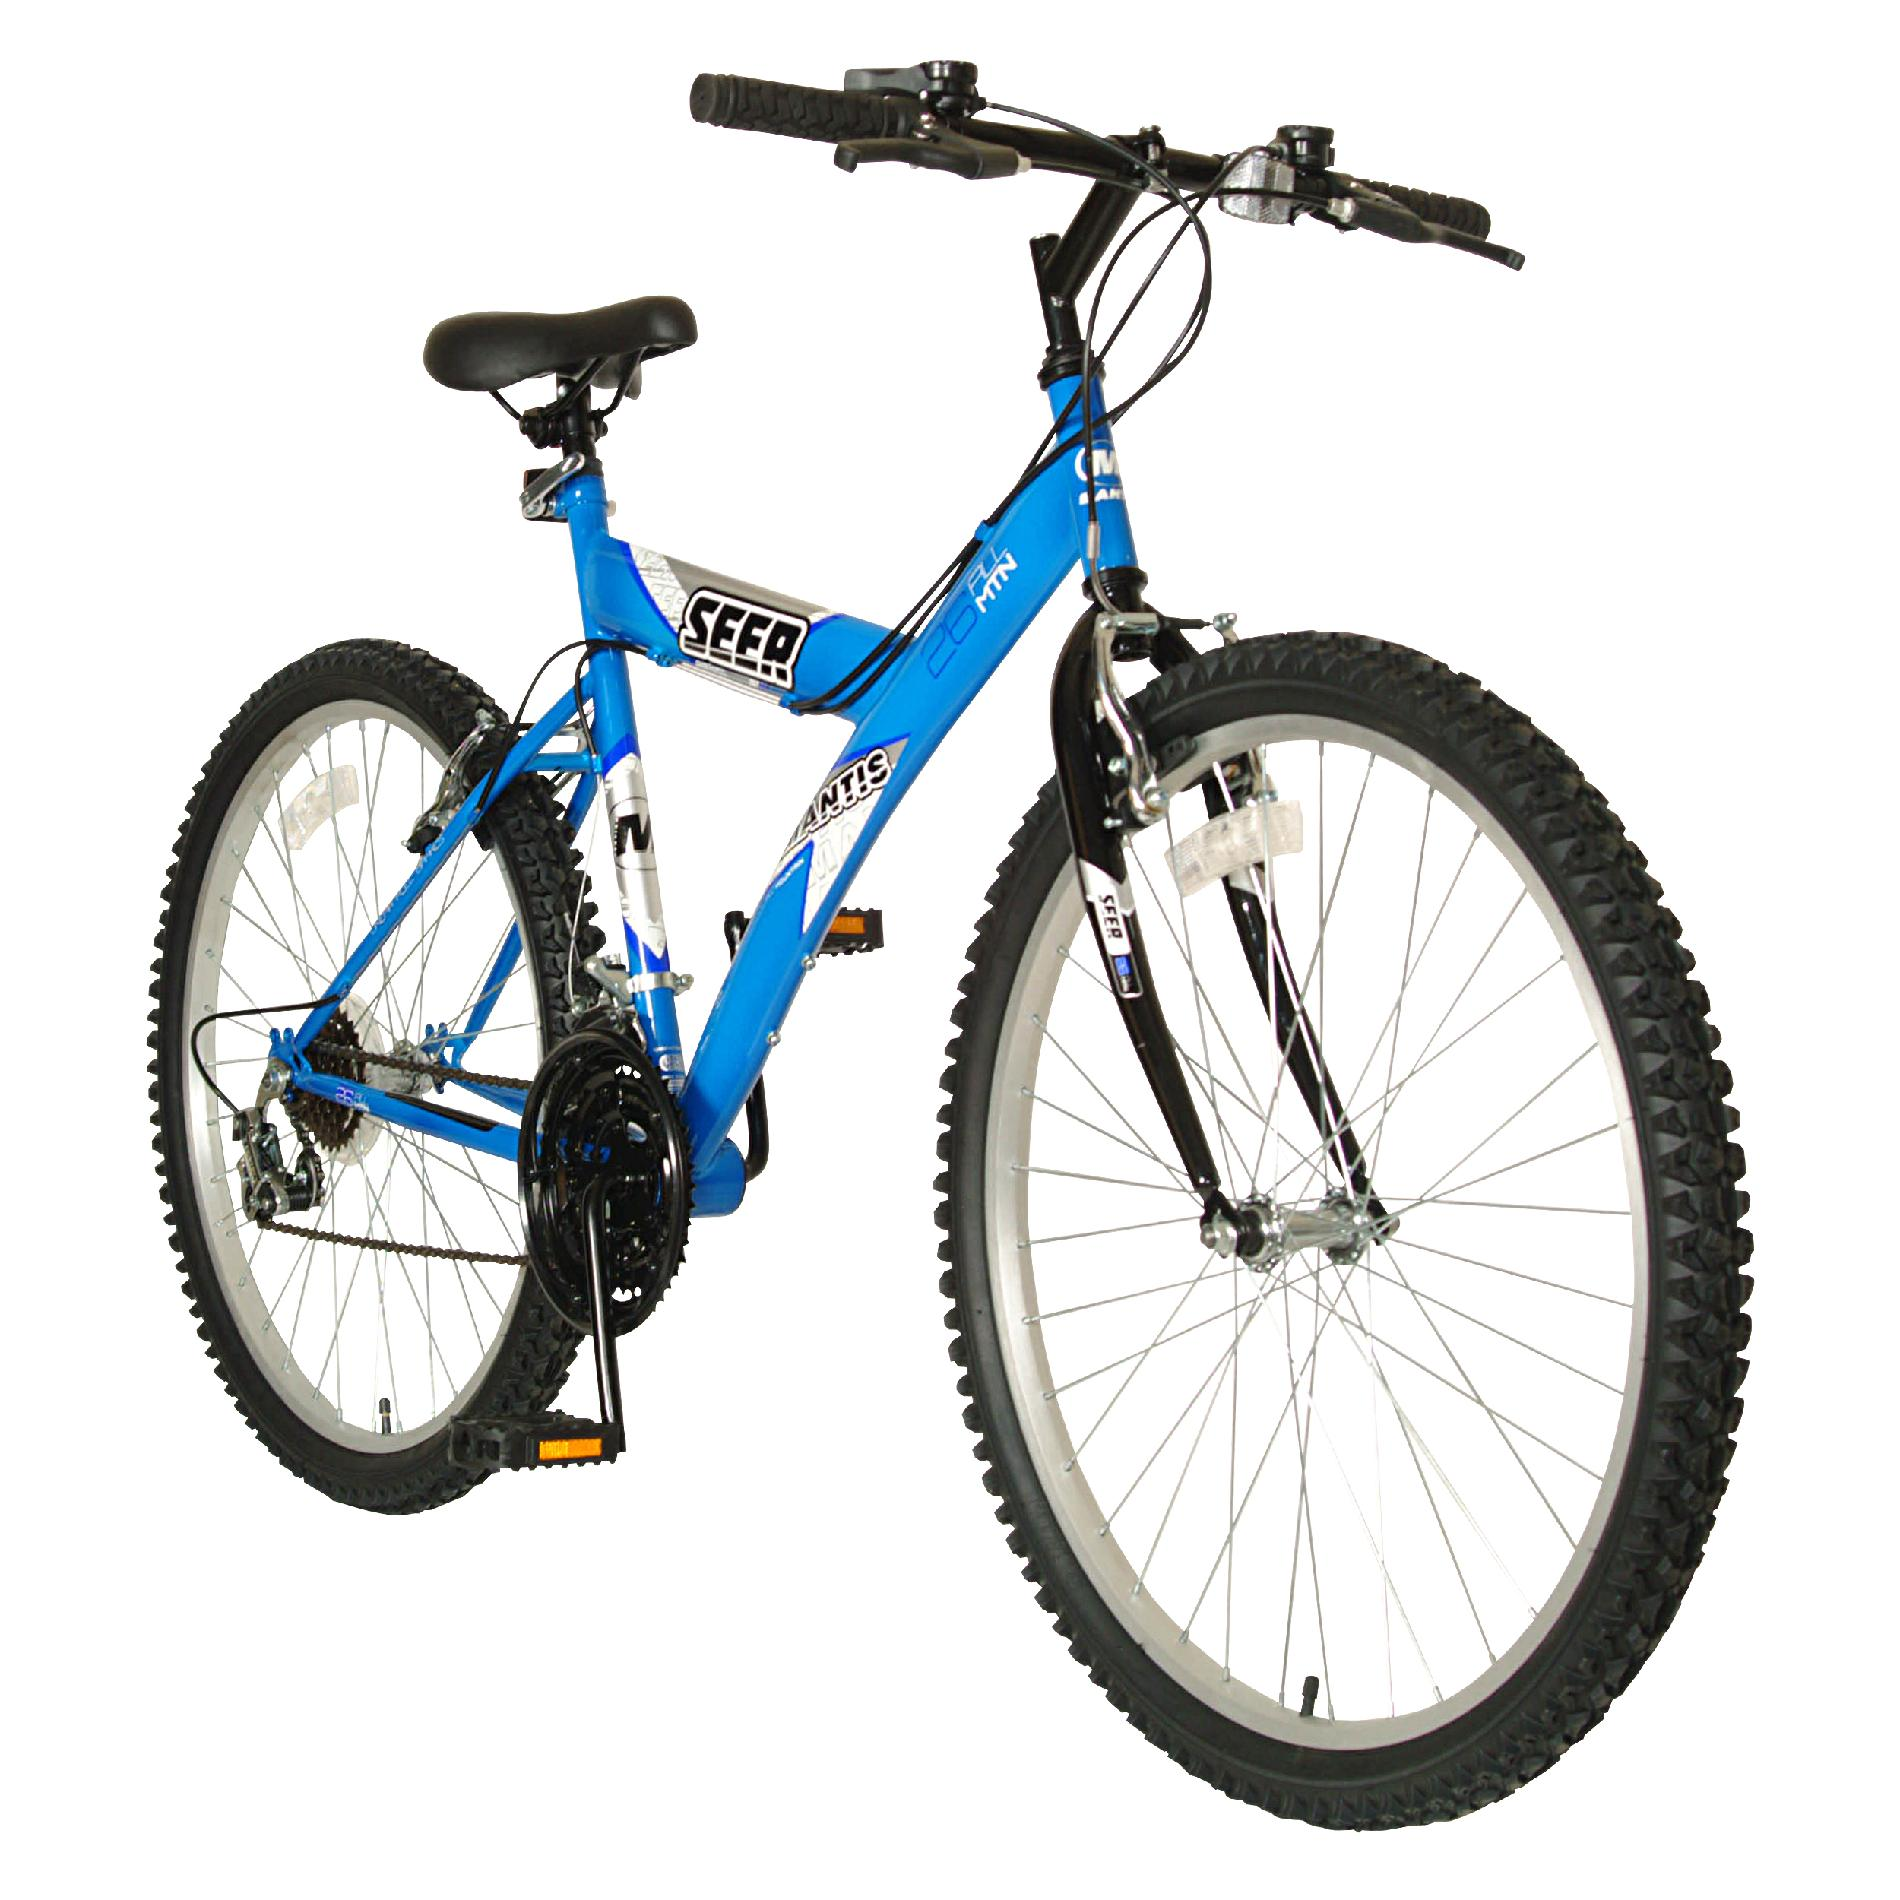 "Mantis Seer 26"" Mountain Bike"